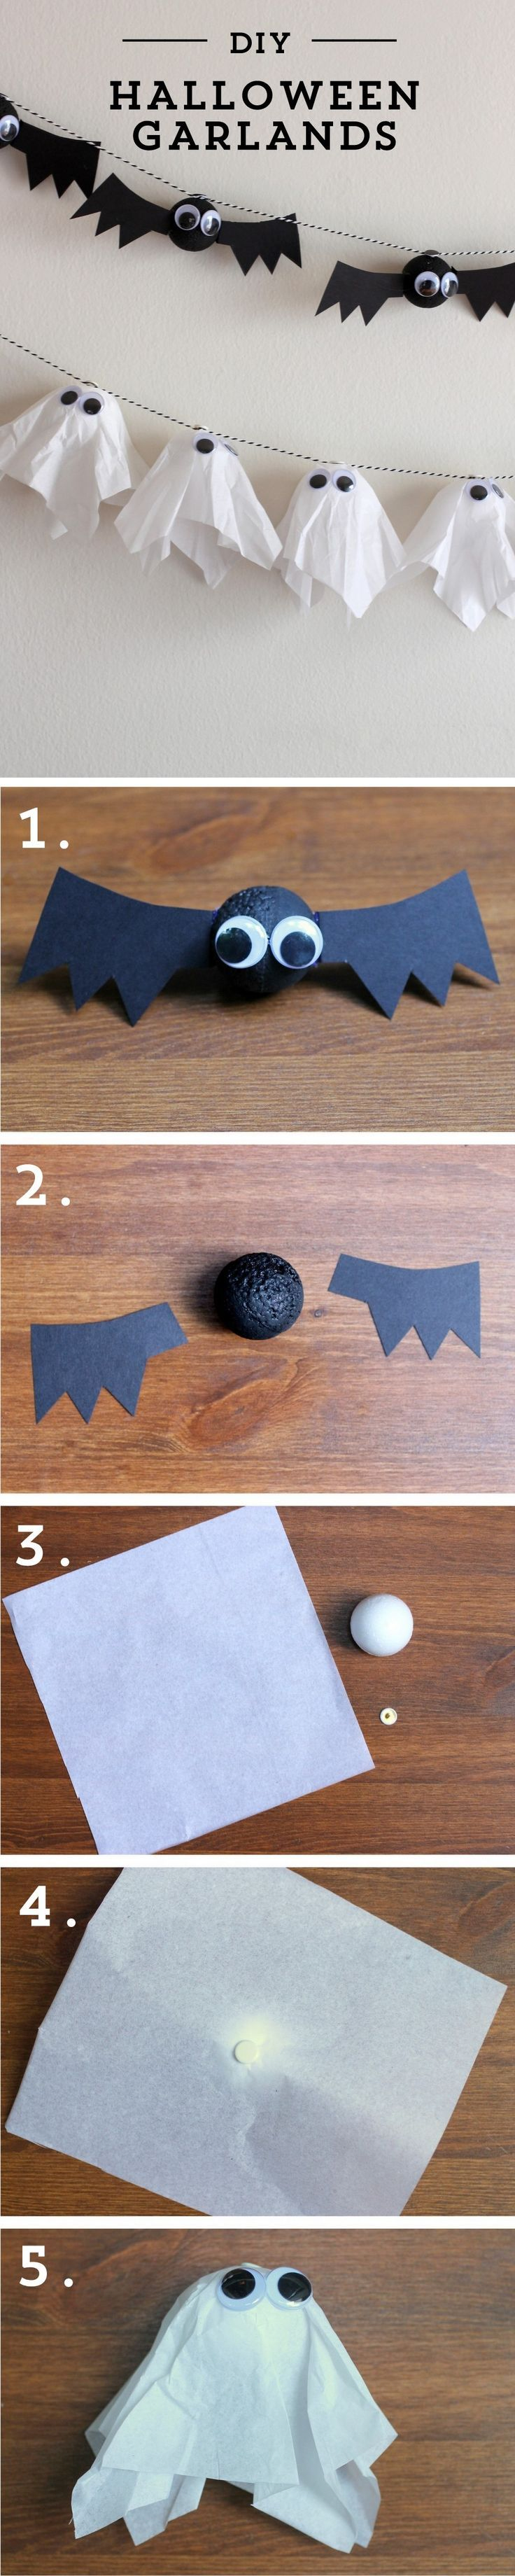 DIY Halloween garlands, if your feeling crafty. http://www.meinesvenja.de/2013/10/22/halloween-deko/